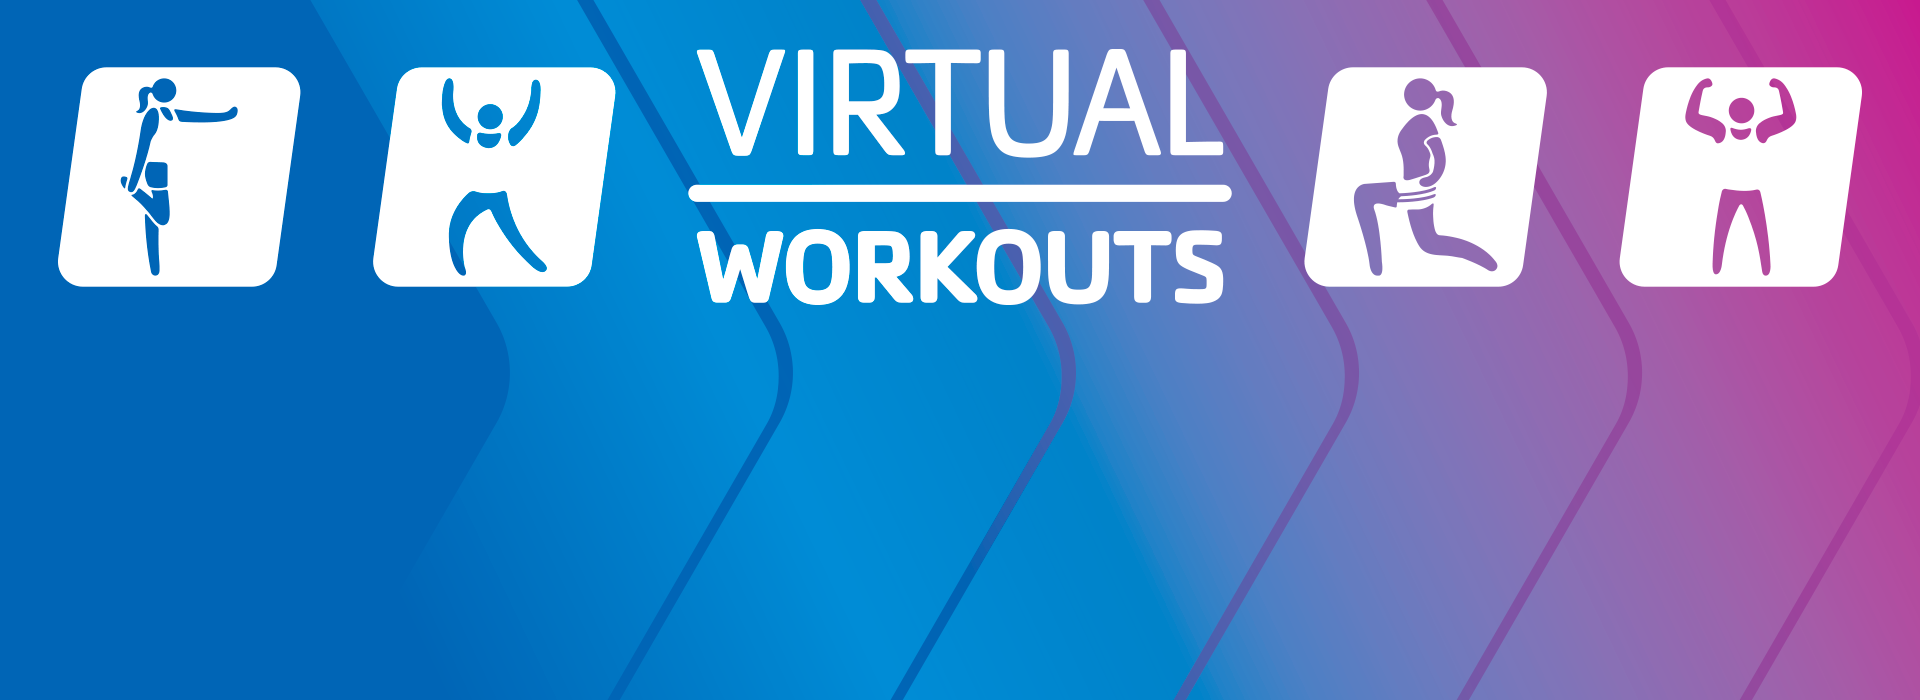 2020_YMCA_Vertual-Workouts_HS